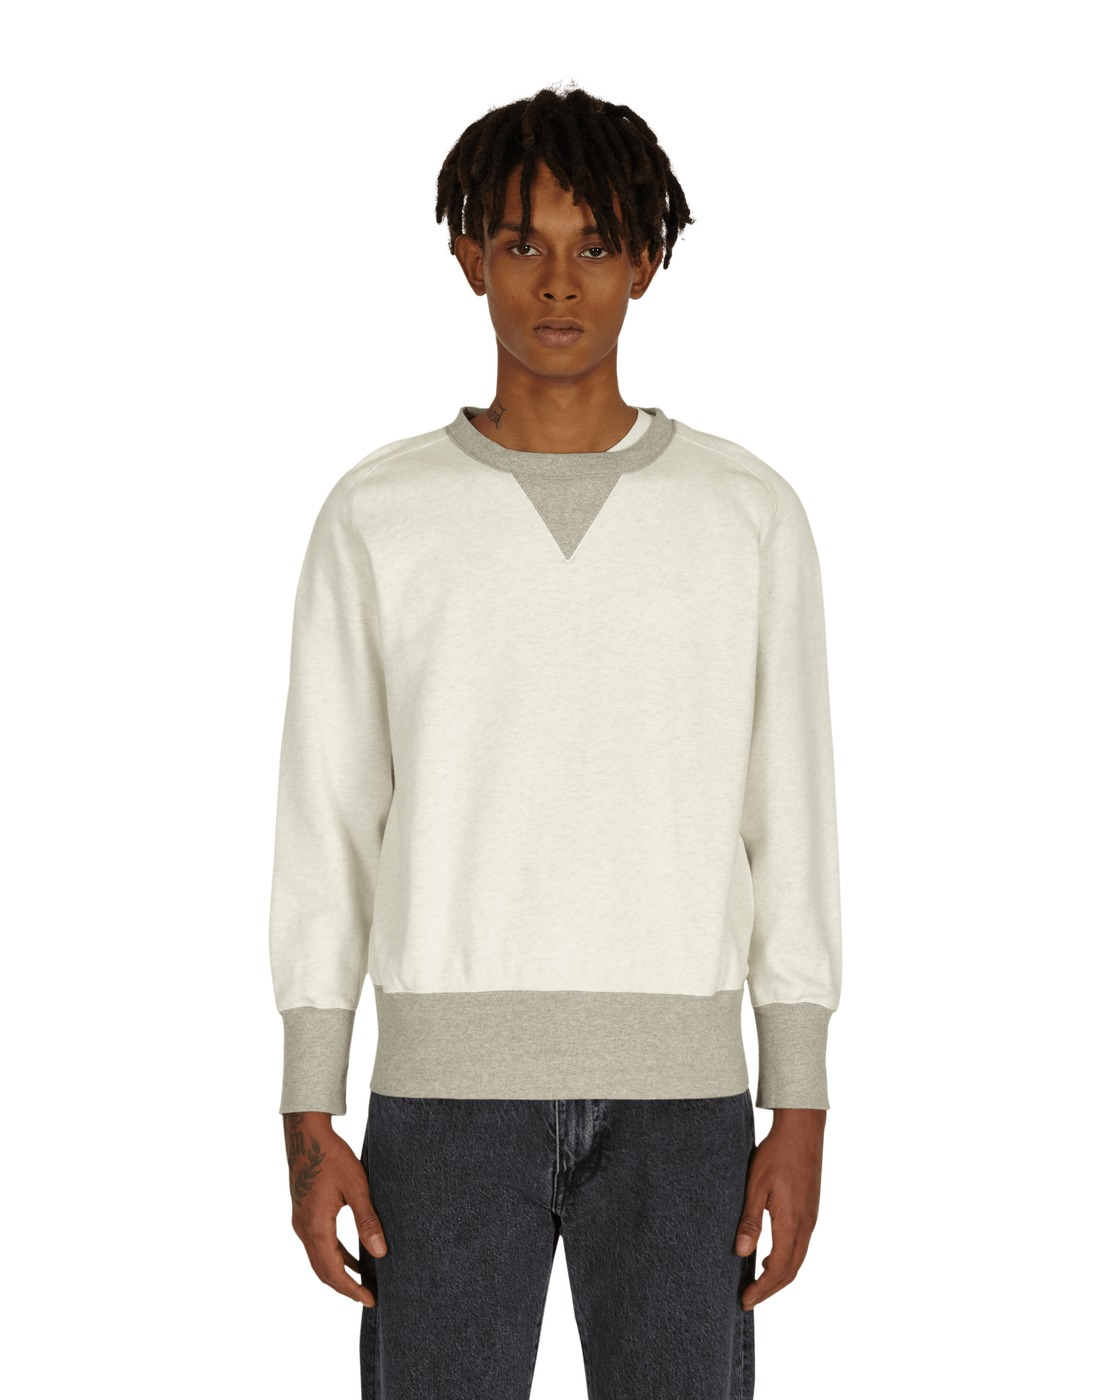 Photo: Levi's Vintage Bay Meadows Crewneck Sweatshirt White Grey